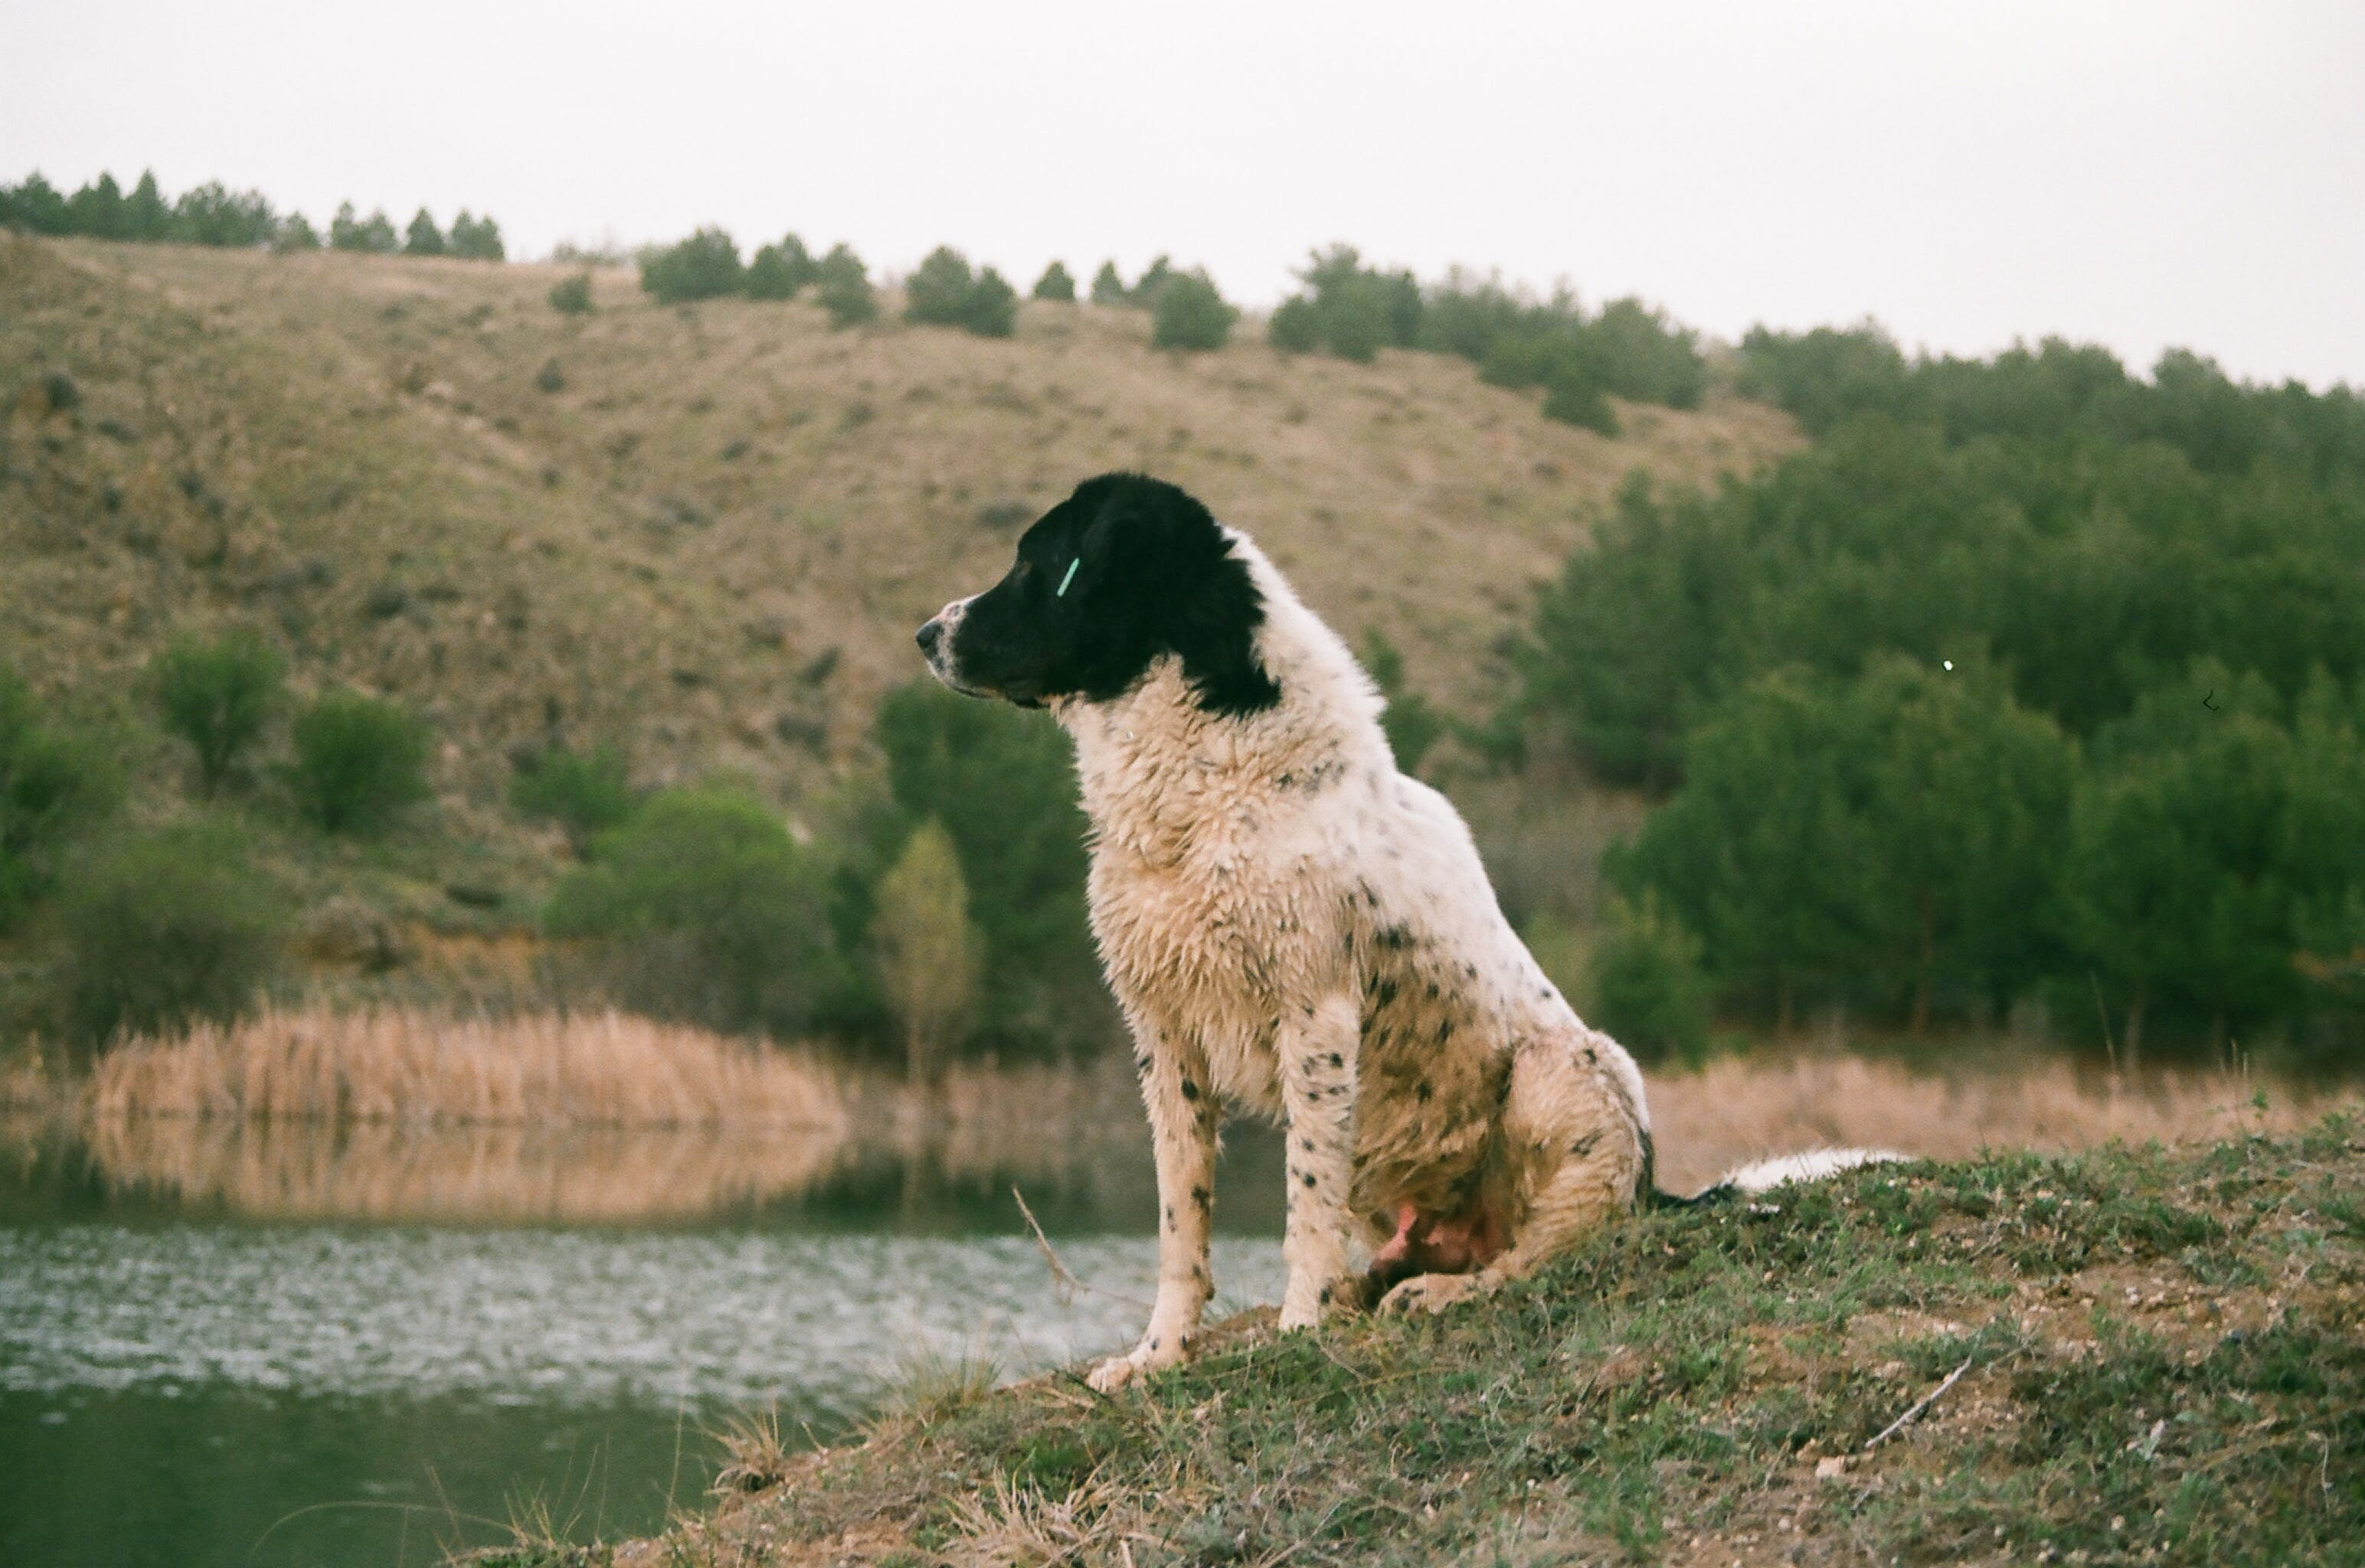 Adult Black and White Caucasian Shepherd Sitting Beside Body of Water